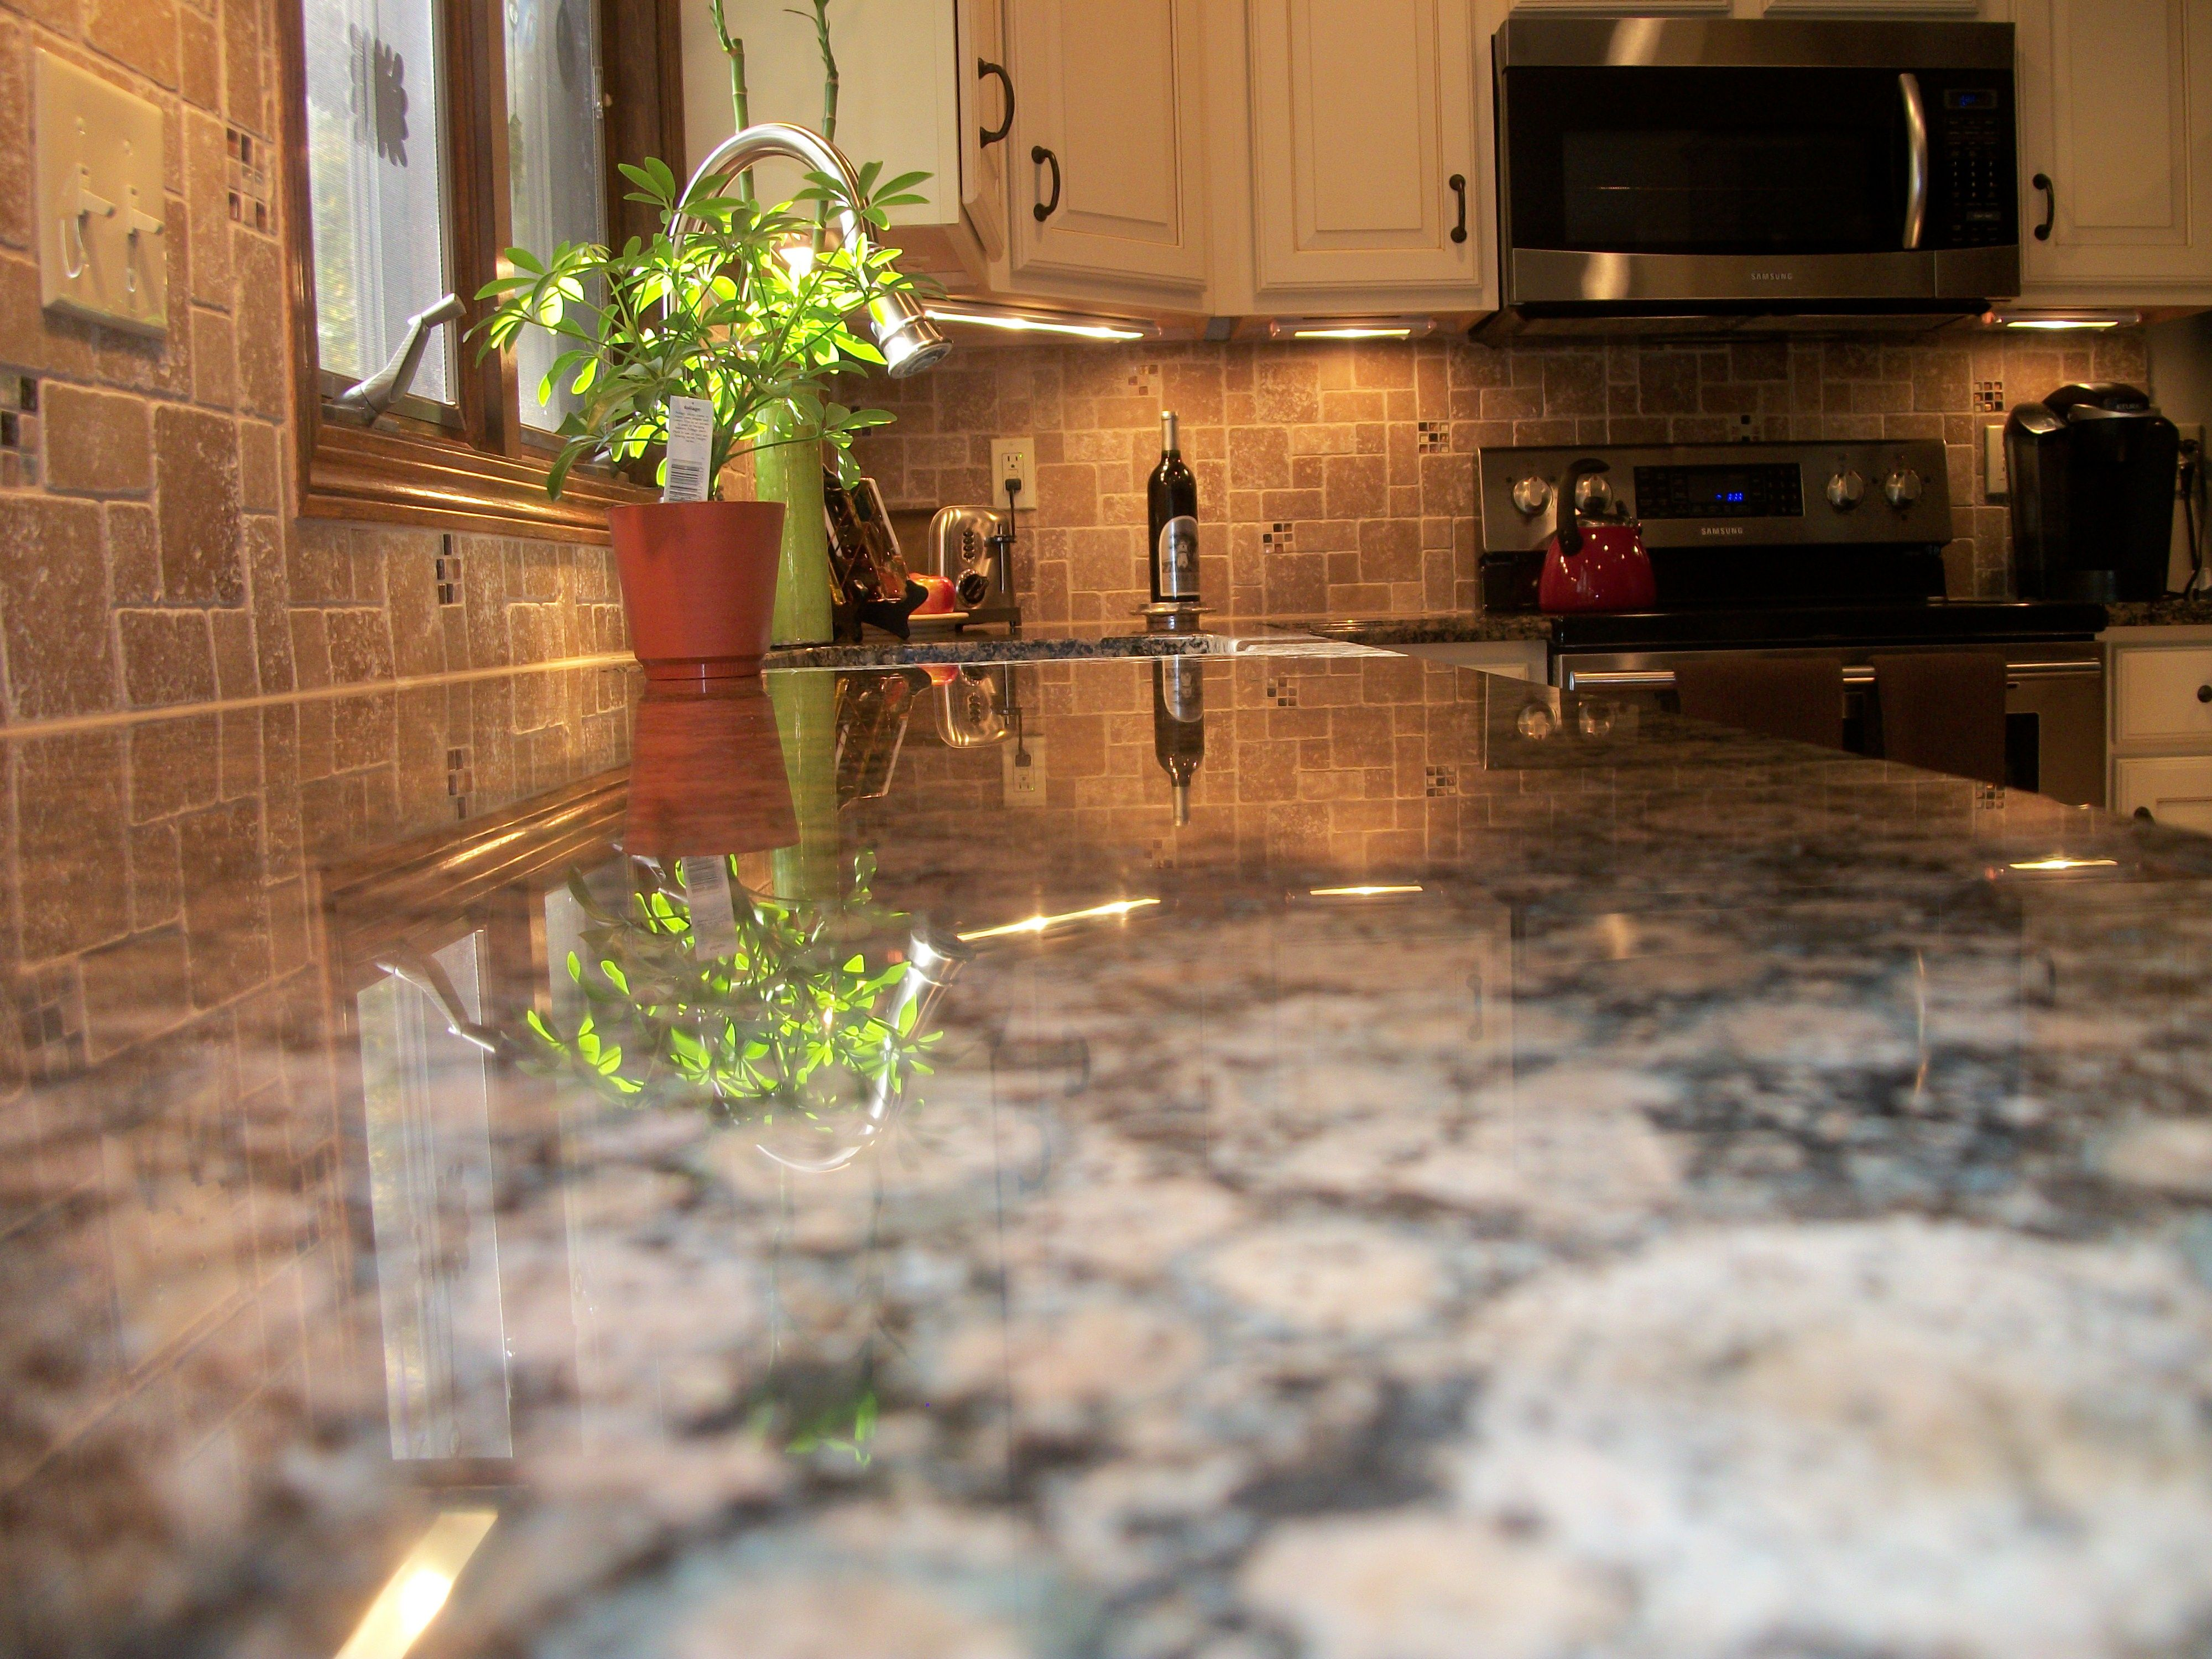 20 best backsplashes images on pinterest backsplash kitchen we installed baltic brown granite countertops and roman stone pattern backsplash with glass accents to beautify